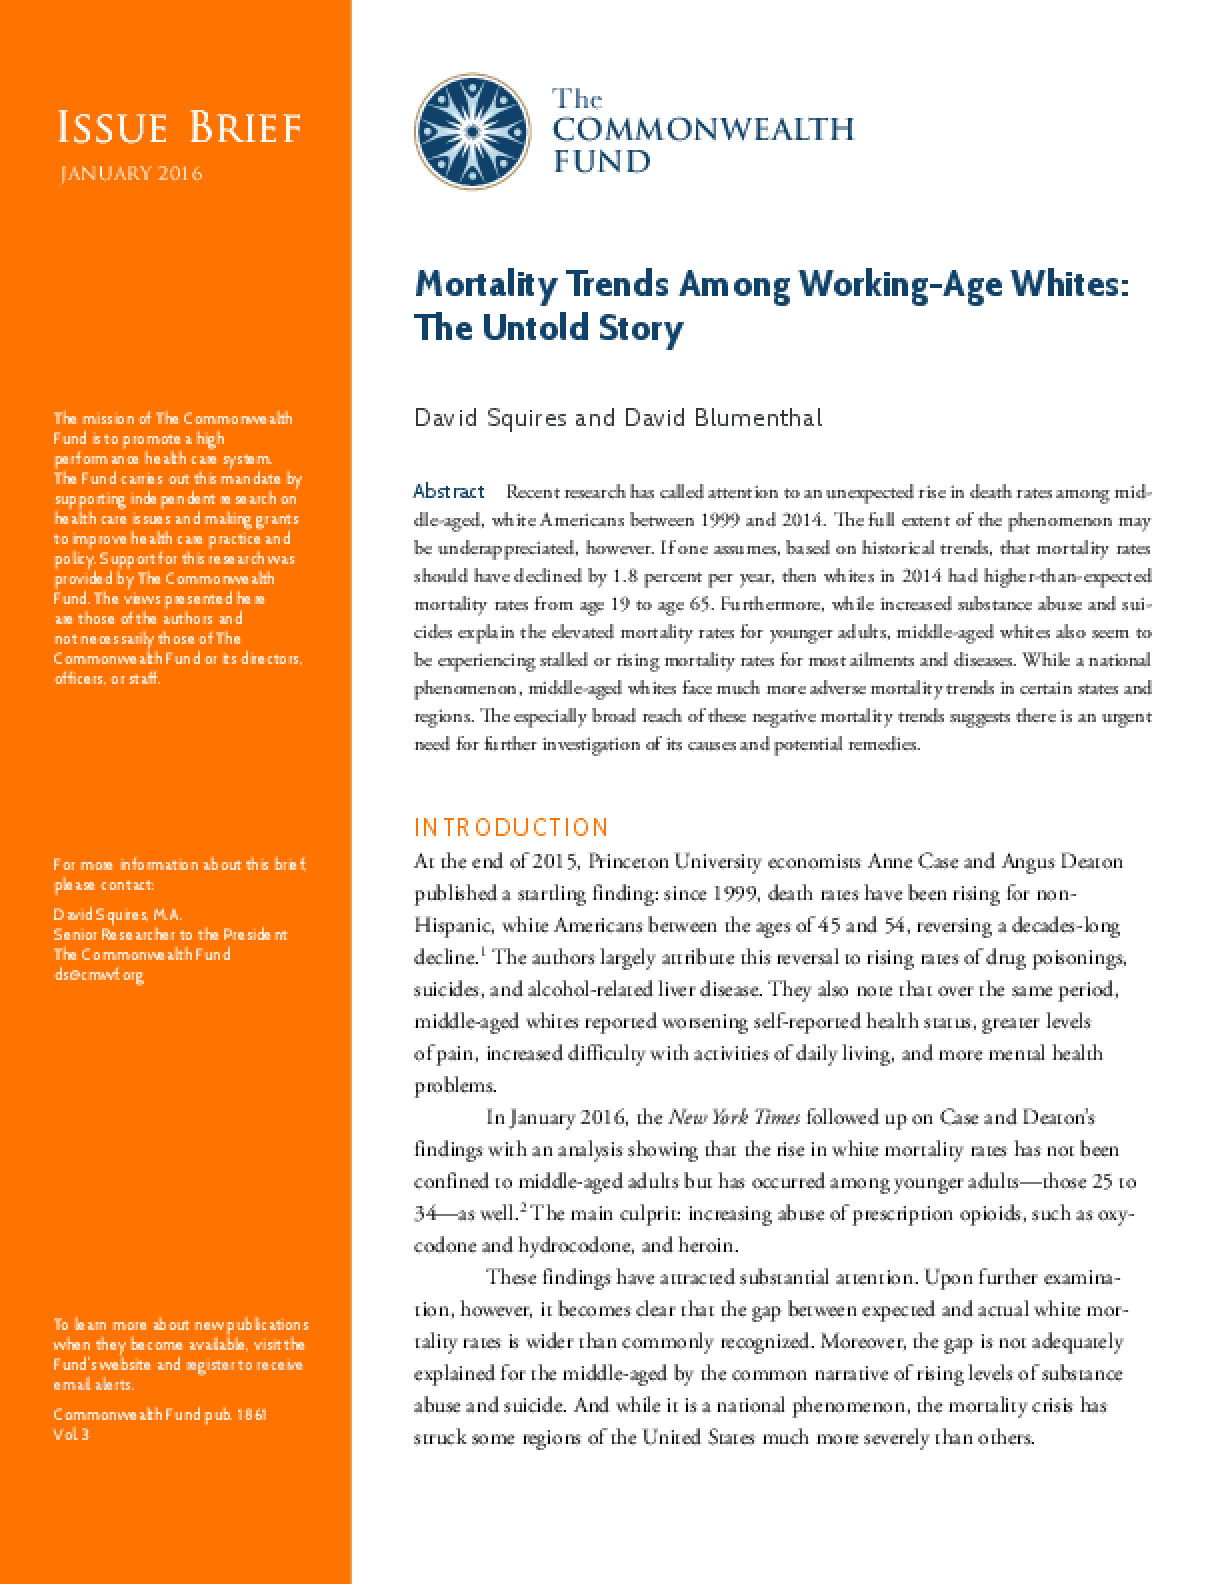 Mortality Trends Among Working-Age Whites: The Untold Story